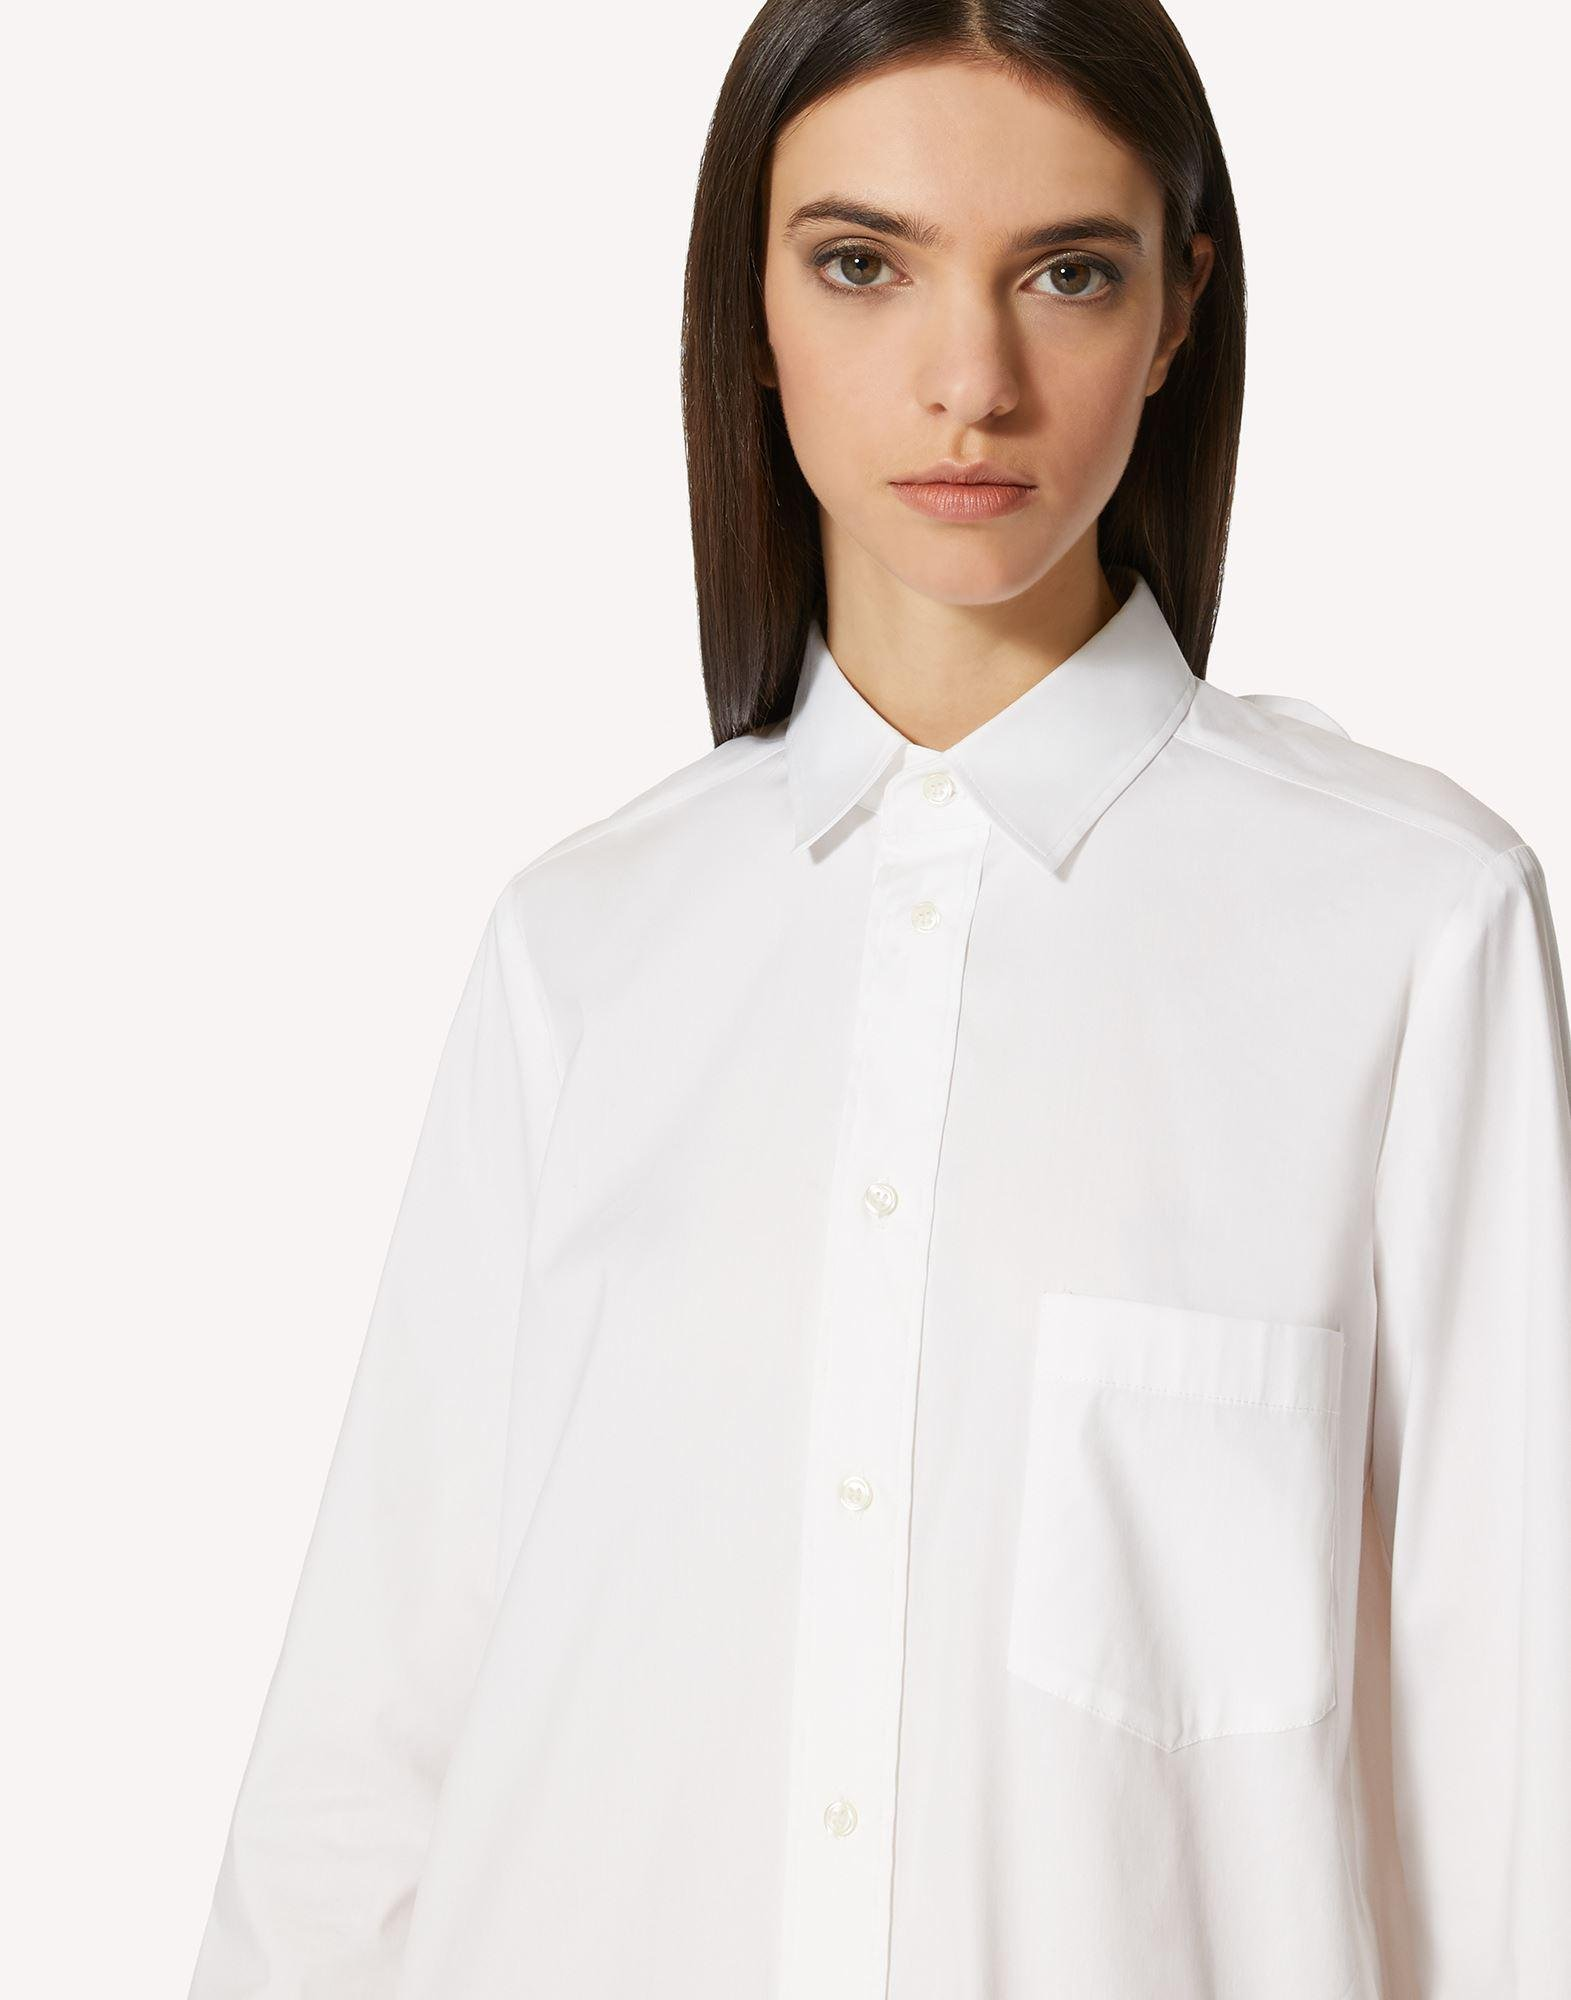 COTTON POPLIN DRESS WITH BOW DETAIL 3